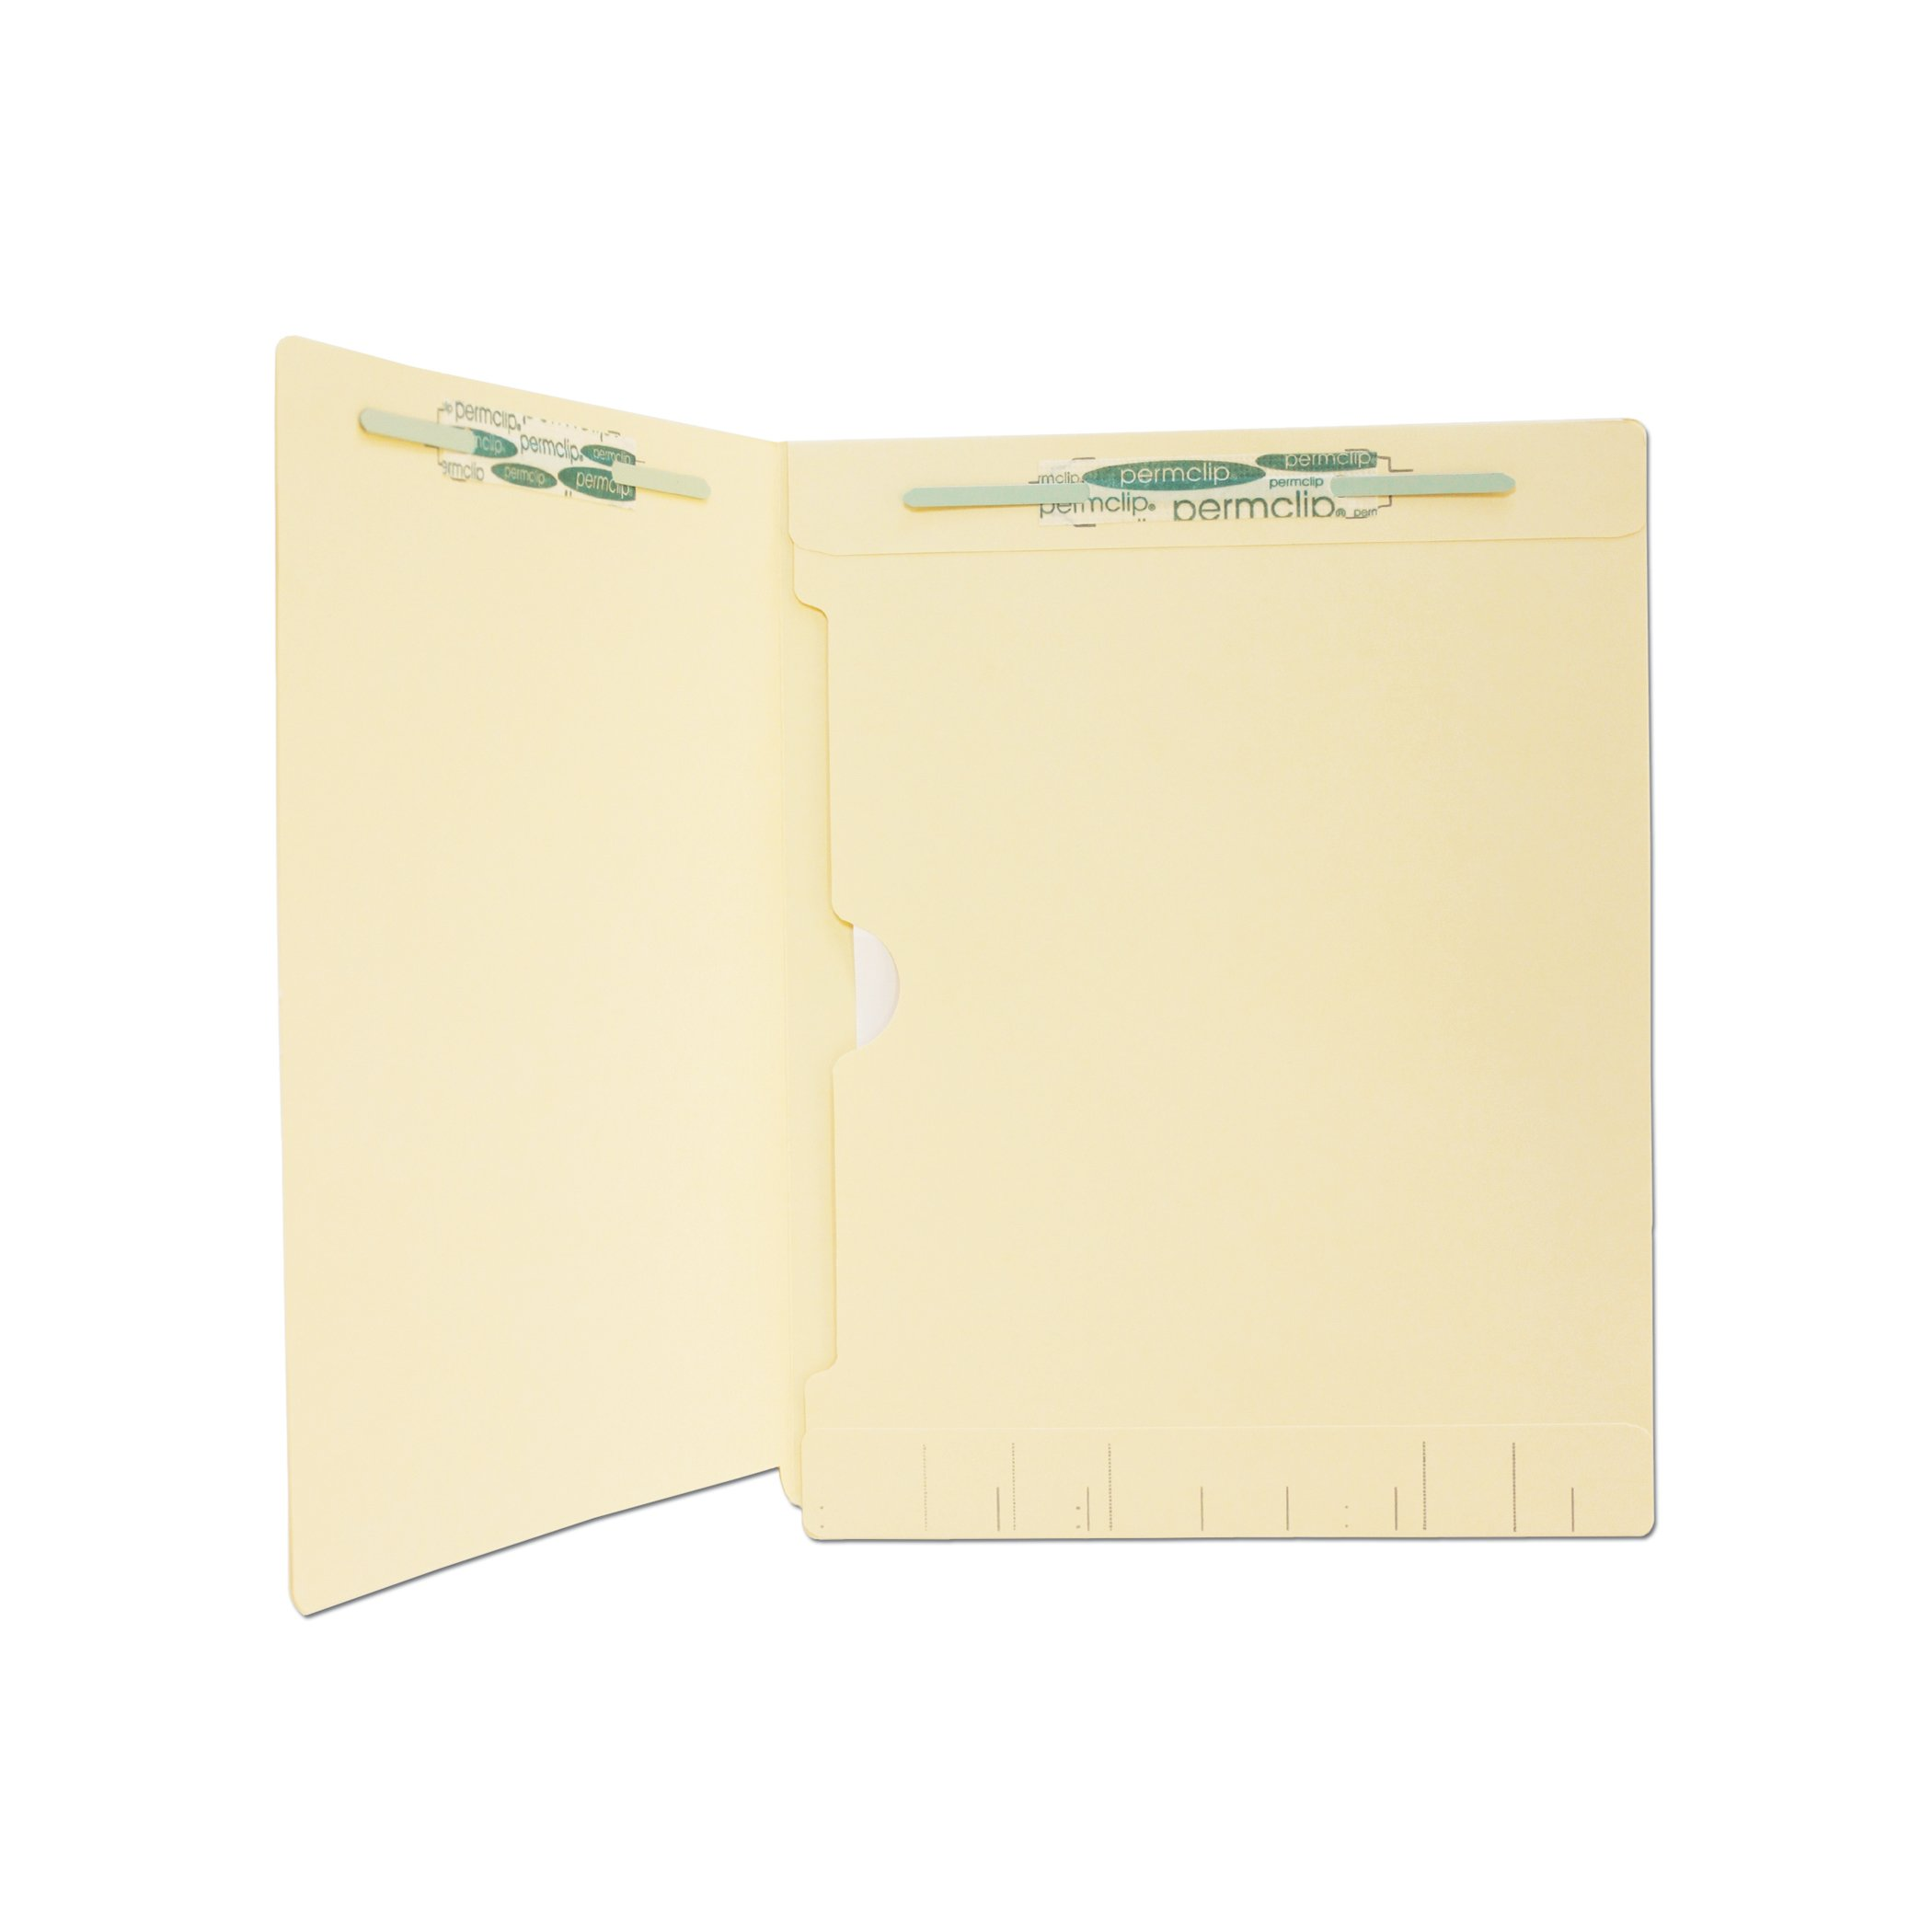 Medical Arts Press Match Manila End Tab Folders with Full Pocket and 2 Permclip Fasteners (250/Carton)